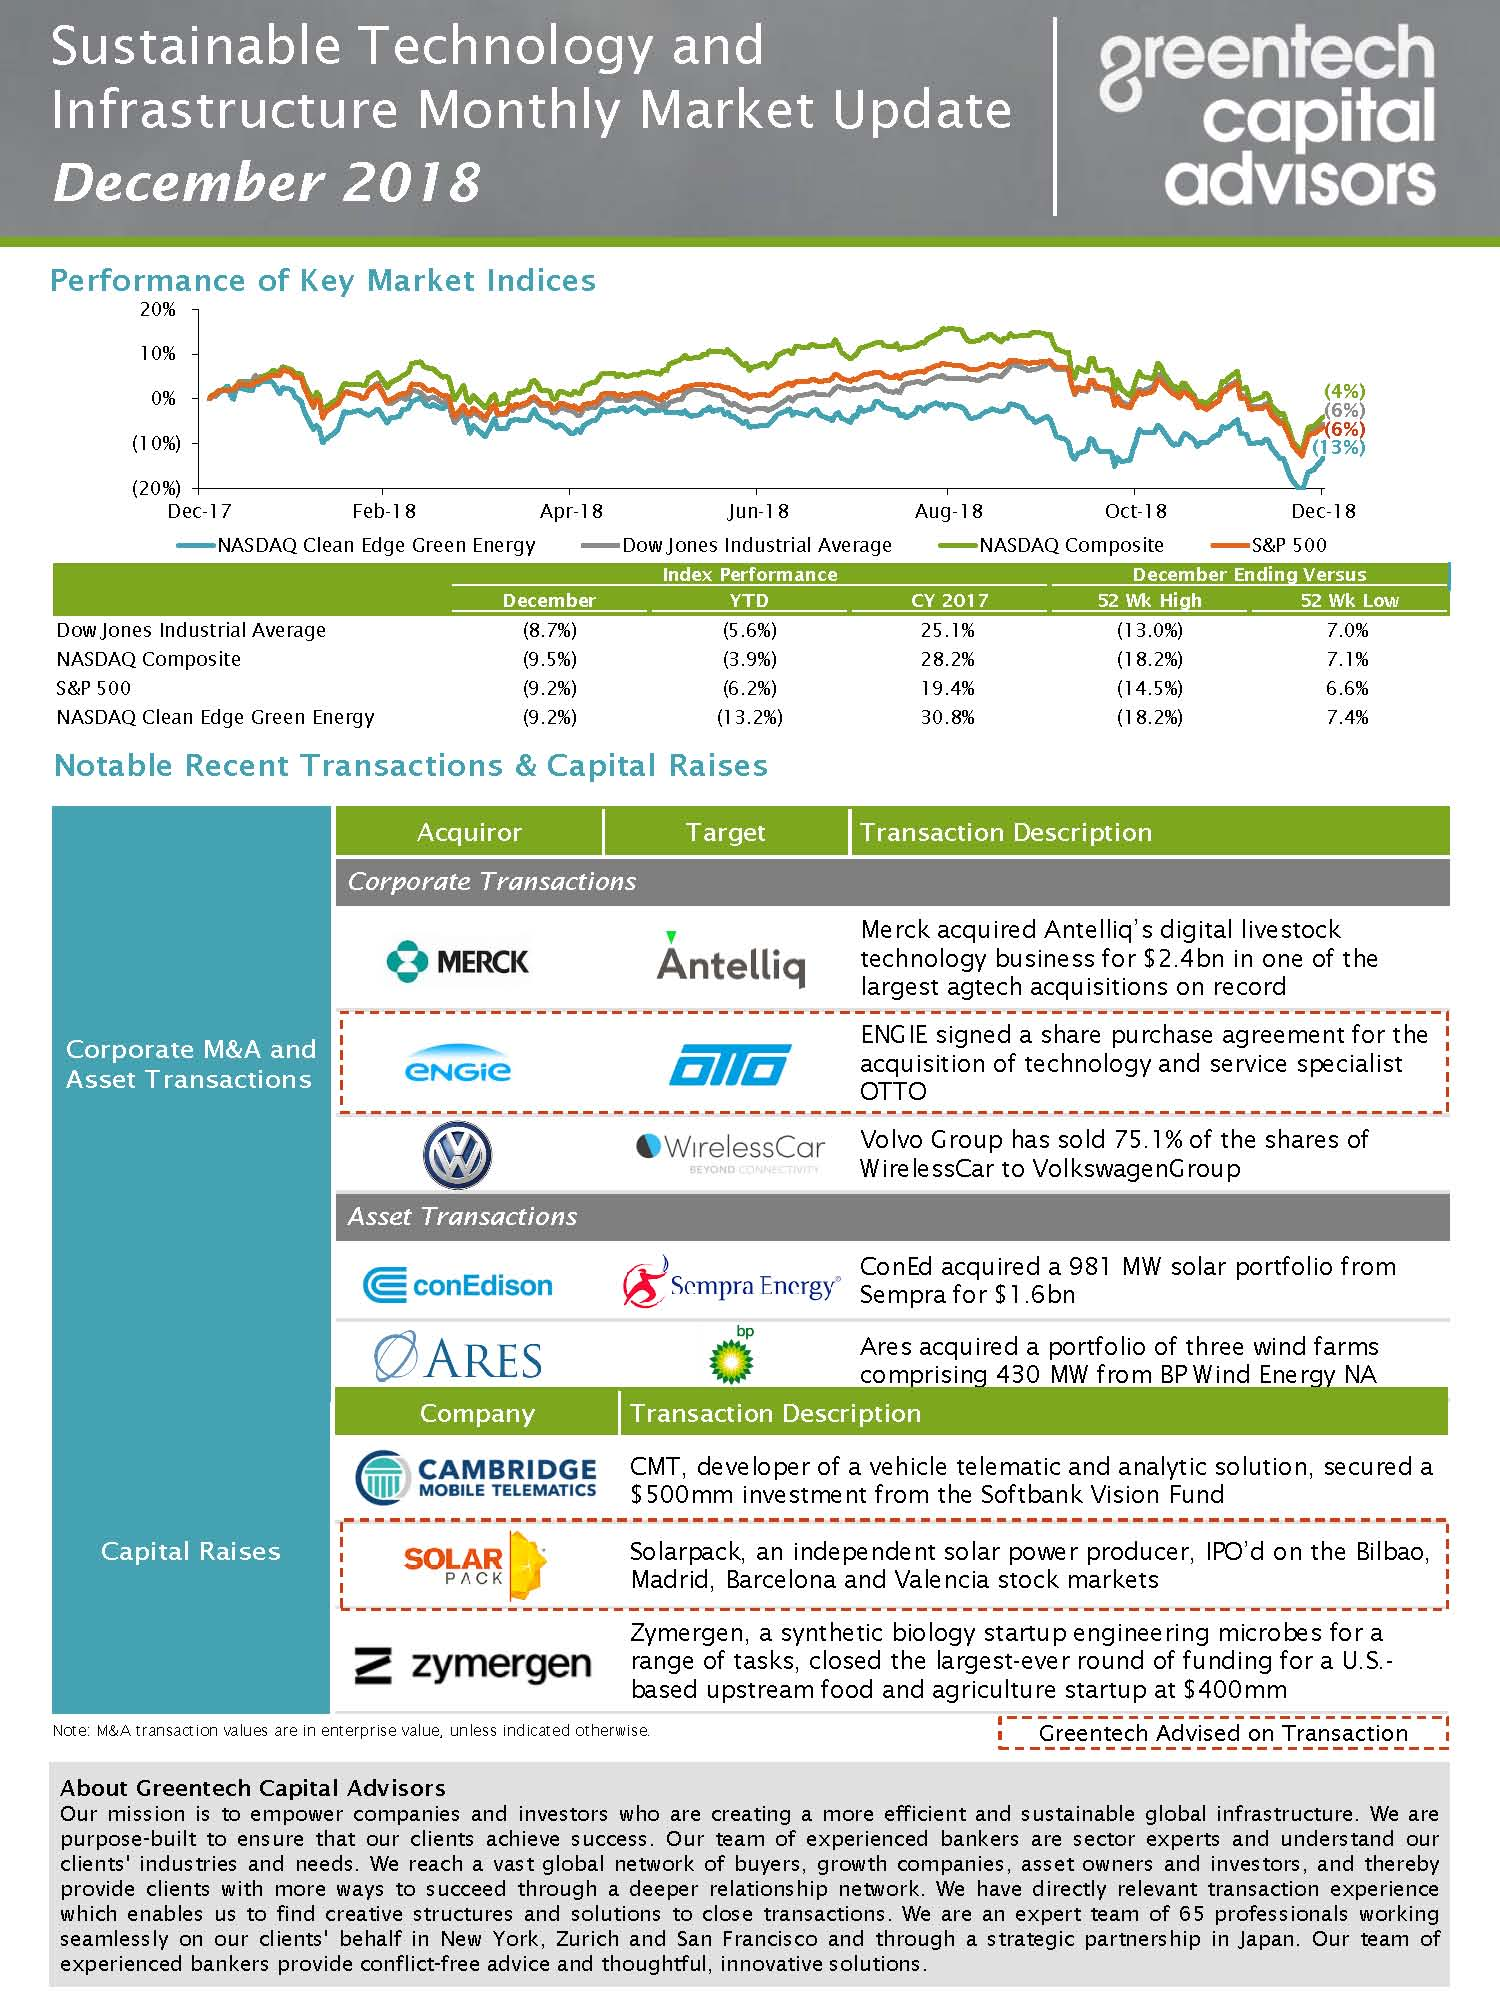 Sustainable Technology and Infrastructure Monthly Market Update